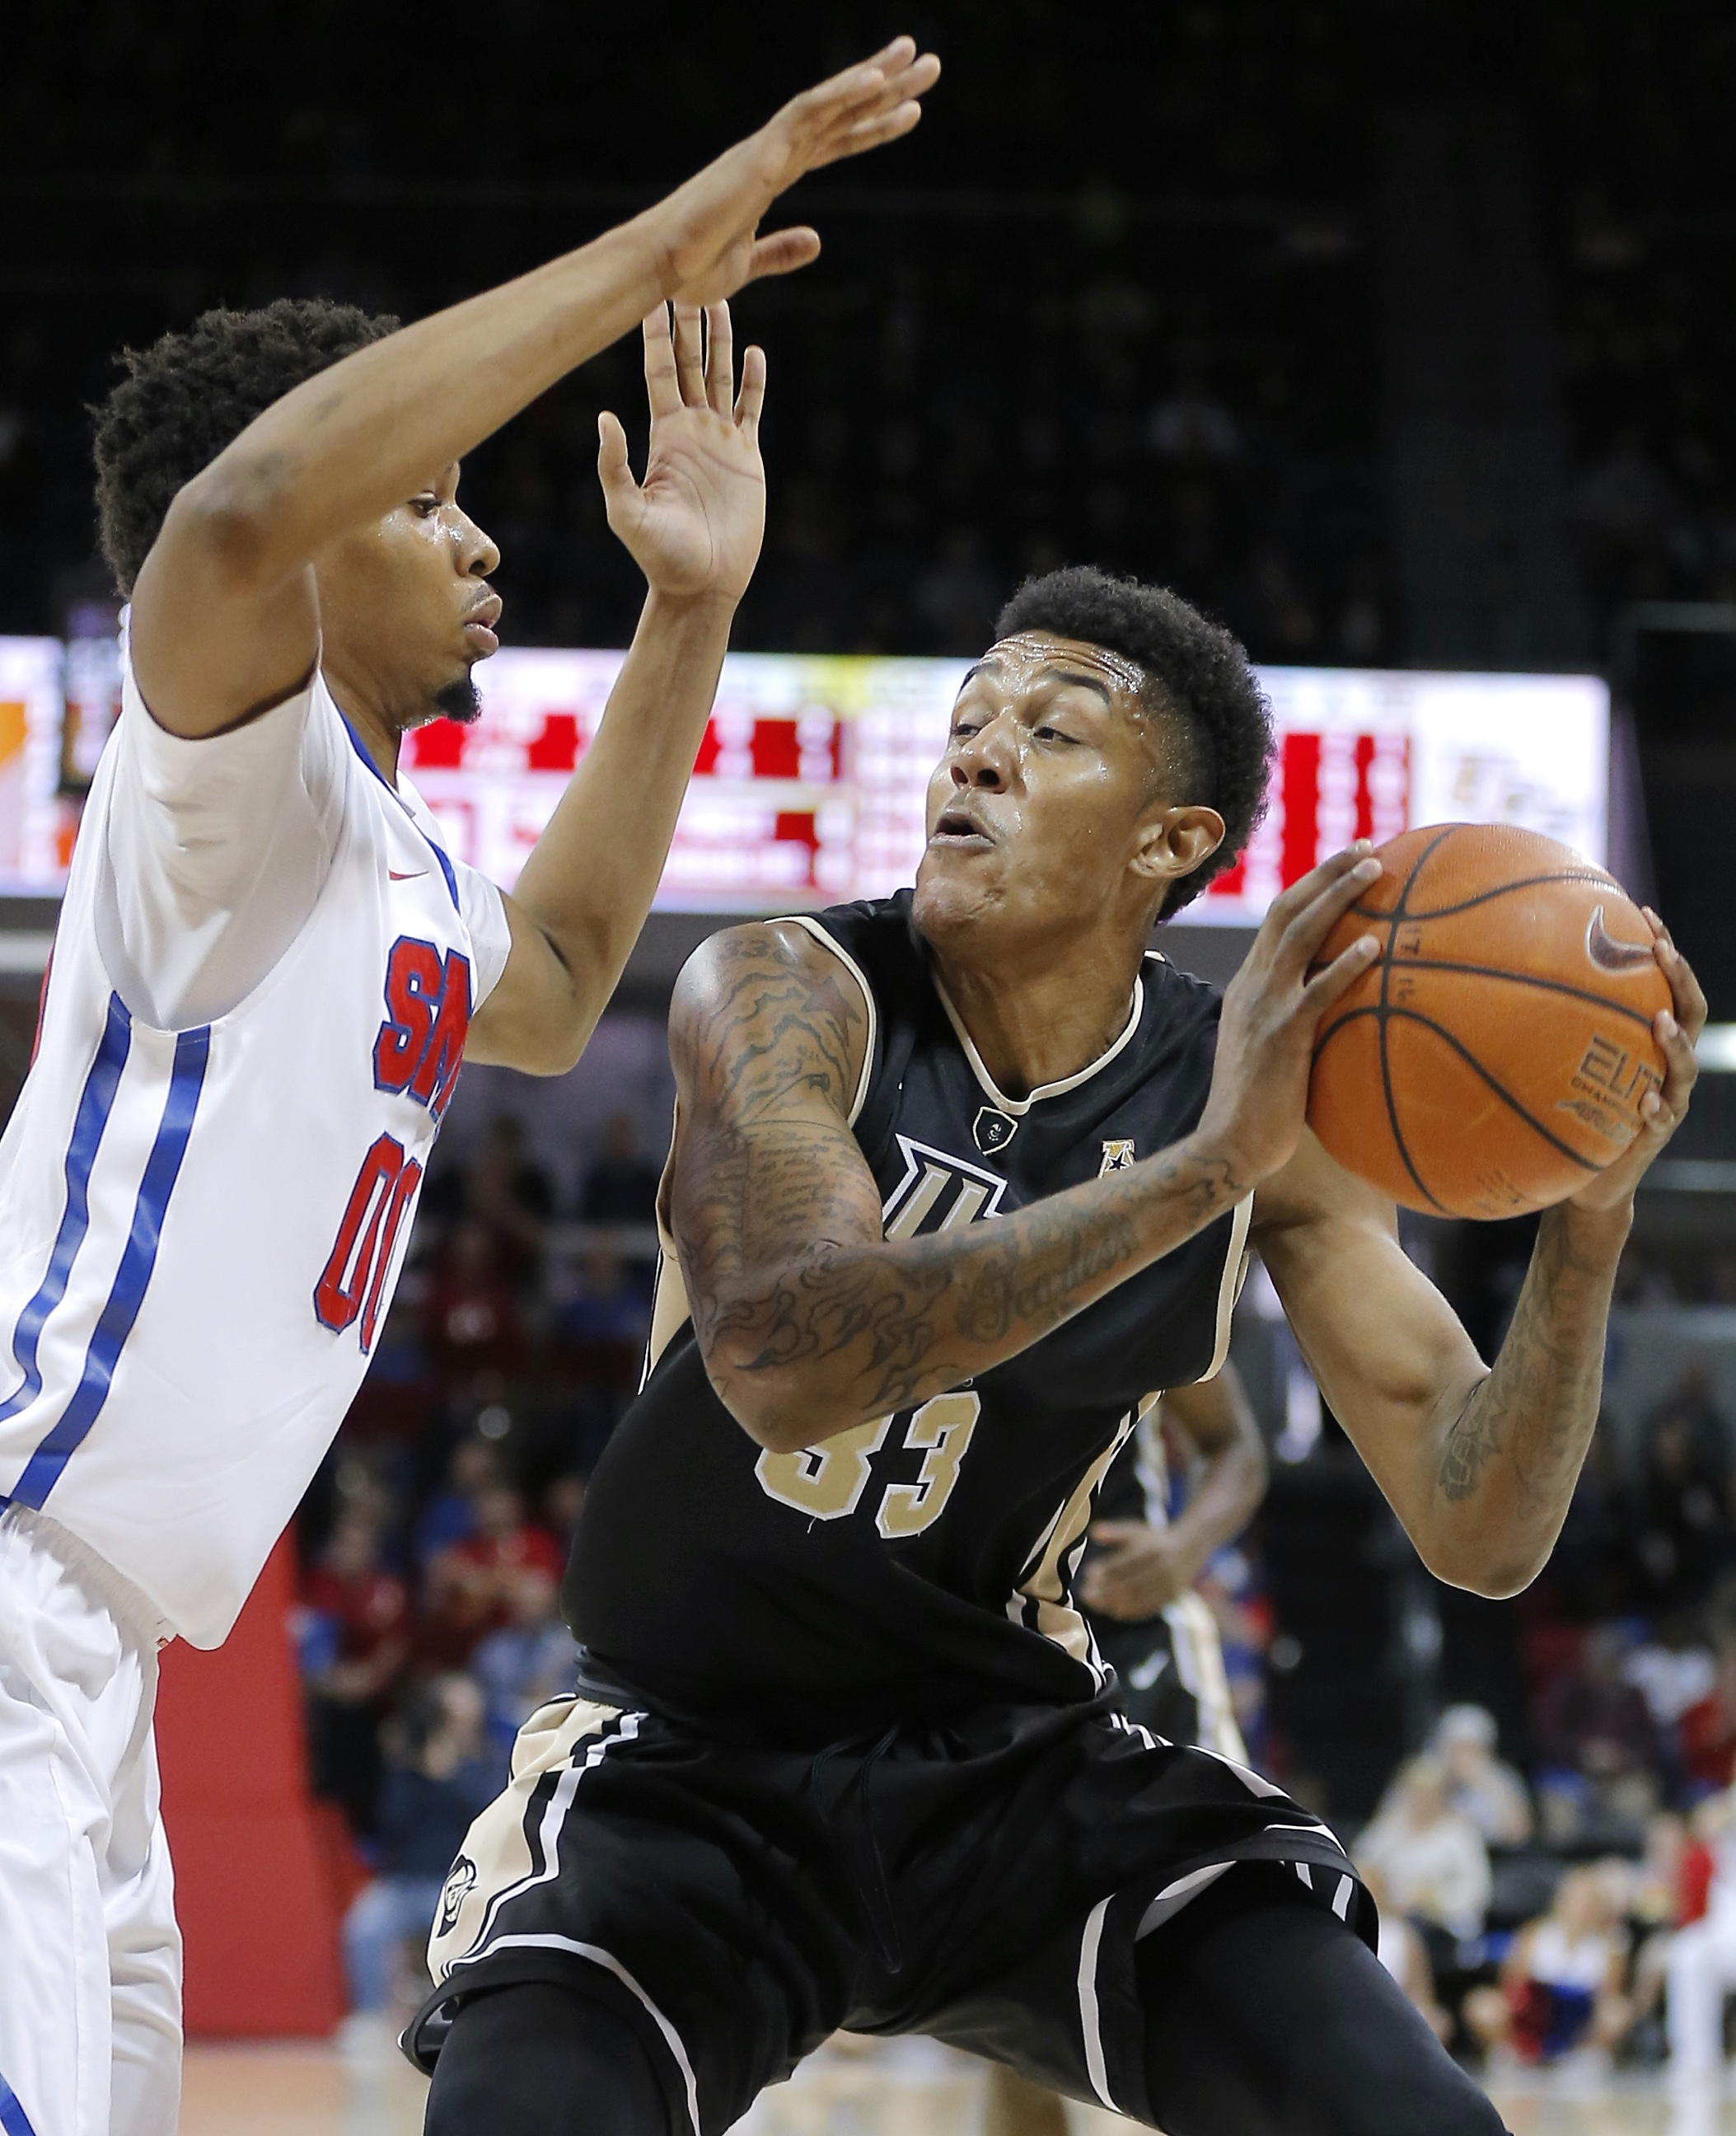 UCF forward Shaheed Davis (33) battles SMU forward Ben Moore (00) for space during the first half of an NCAA college basketball game, Sunday, Jan. 10, 2016, in Dallas. (AP Photo/Brandon Wade)